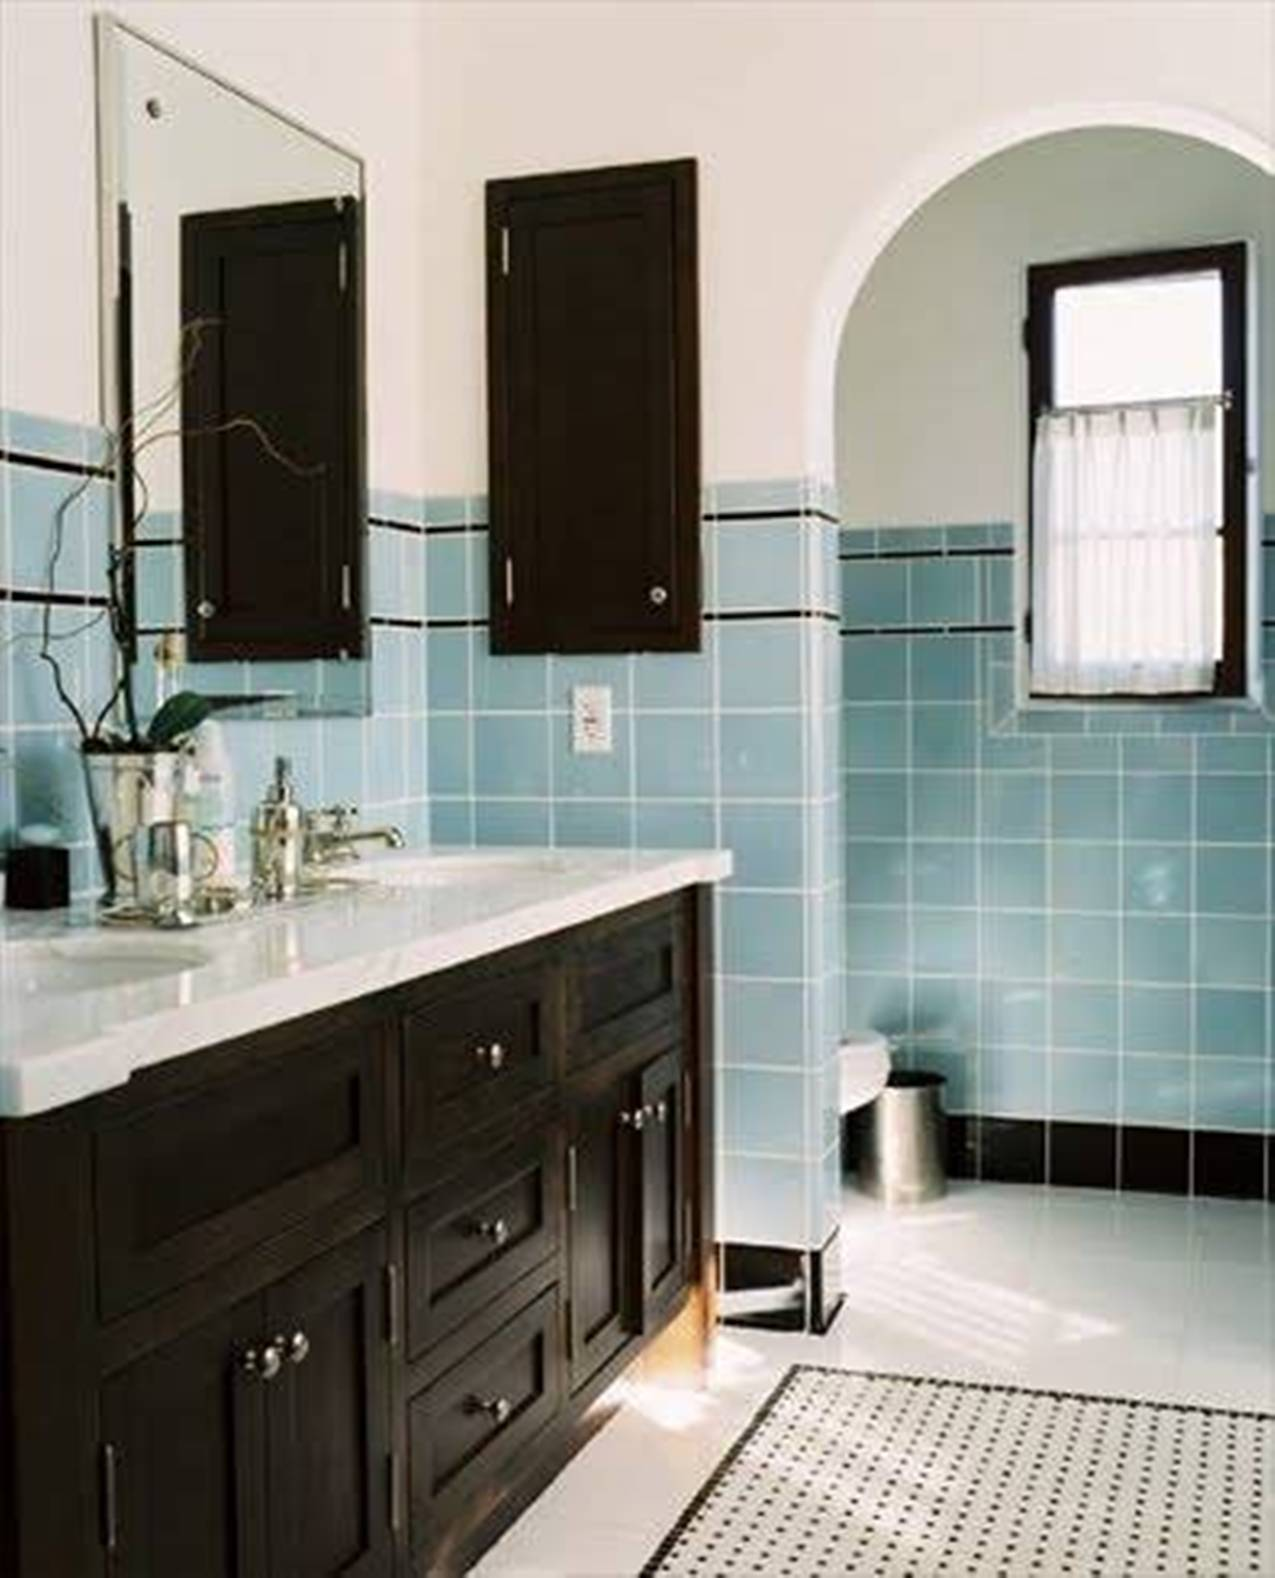 45 magnificent pictures of retro bathroom tile design ideas for Vintage bathroom designs